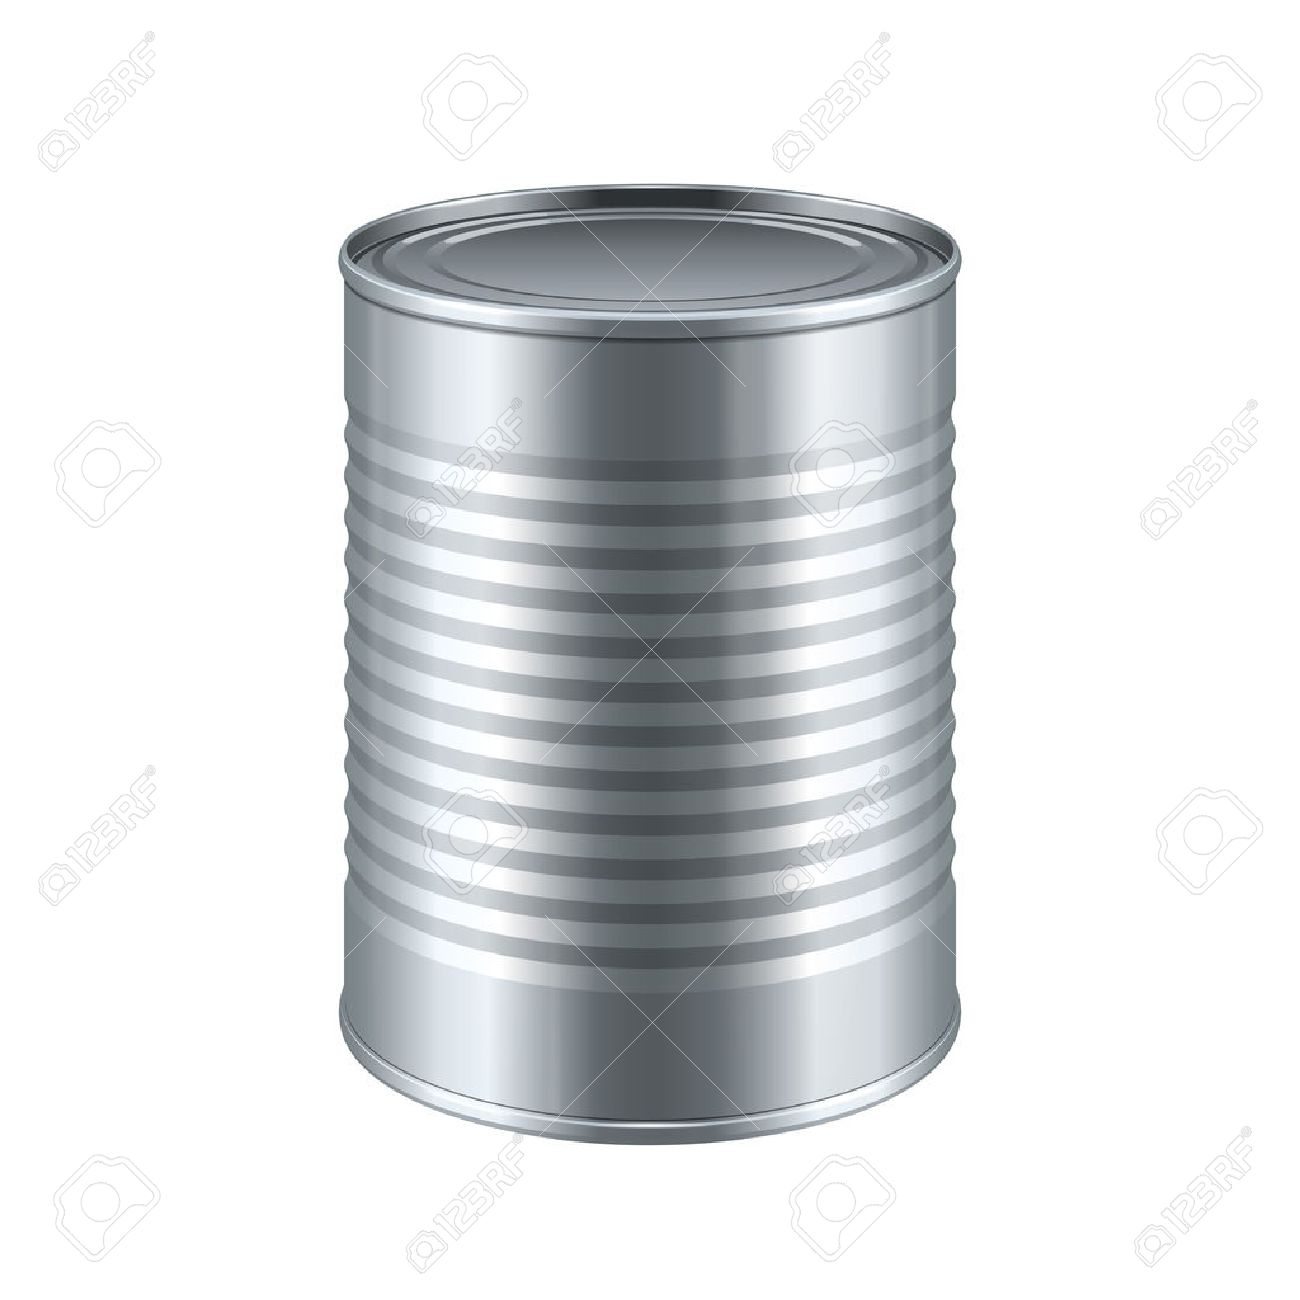 hot sale online ad474 fc1f3 Tincan Ribbed Metal Tin Can, Canned Food. Ready For Your Design. Product  Packing